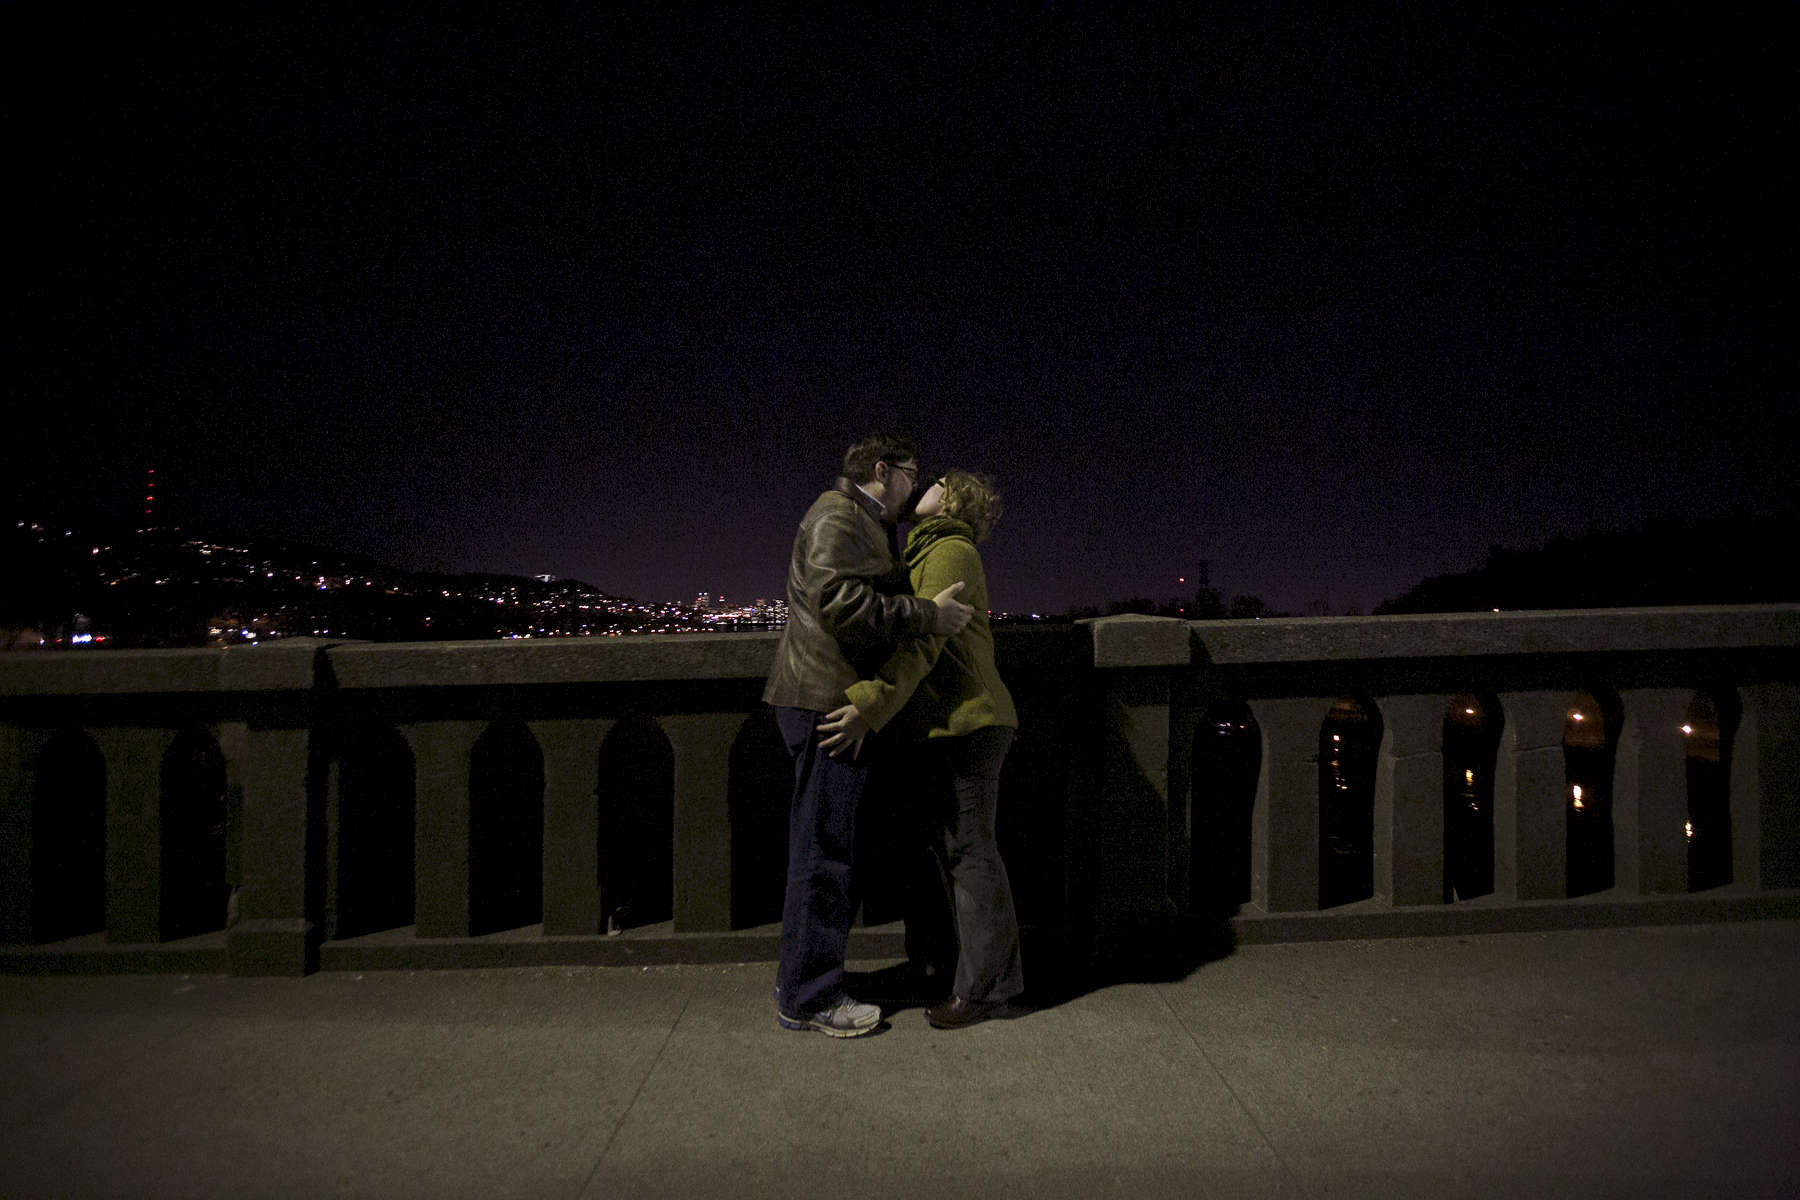 A couple has a romantic kiss atop the old Sellwood Bridge in Portland during the final hours of public access on the 90-year-old bridge before it is replaced.